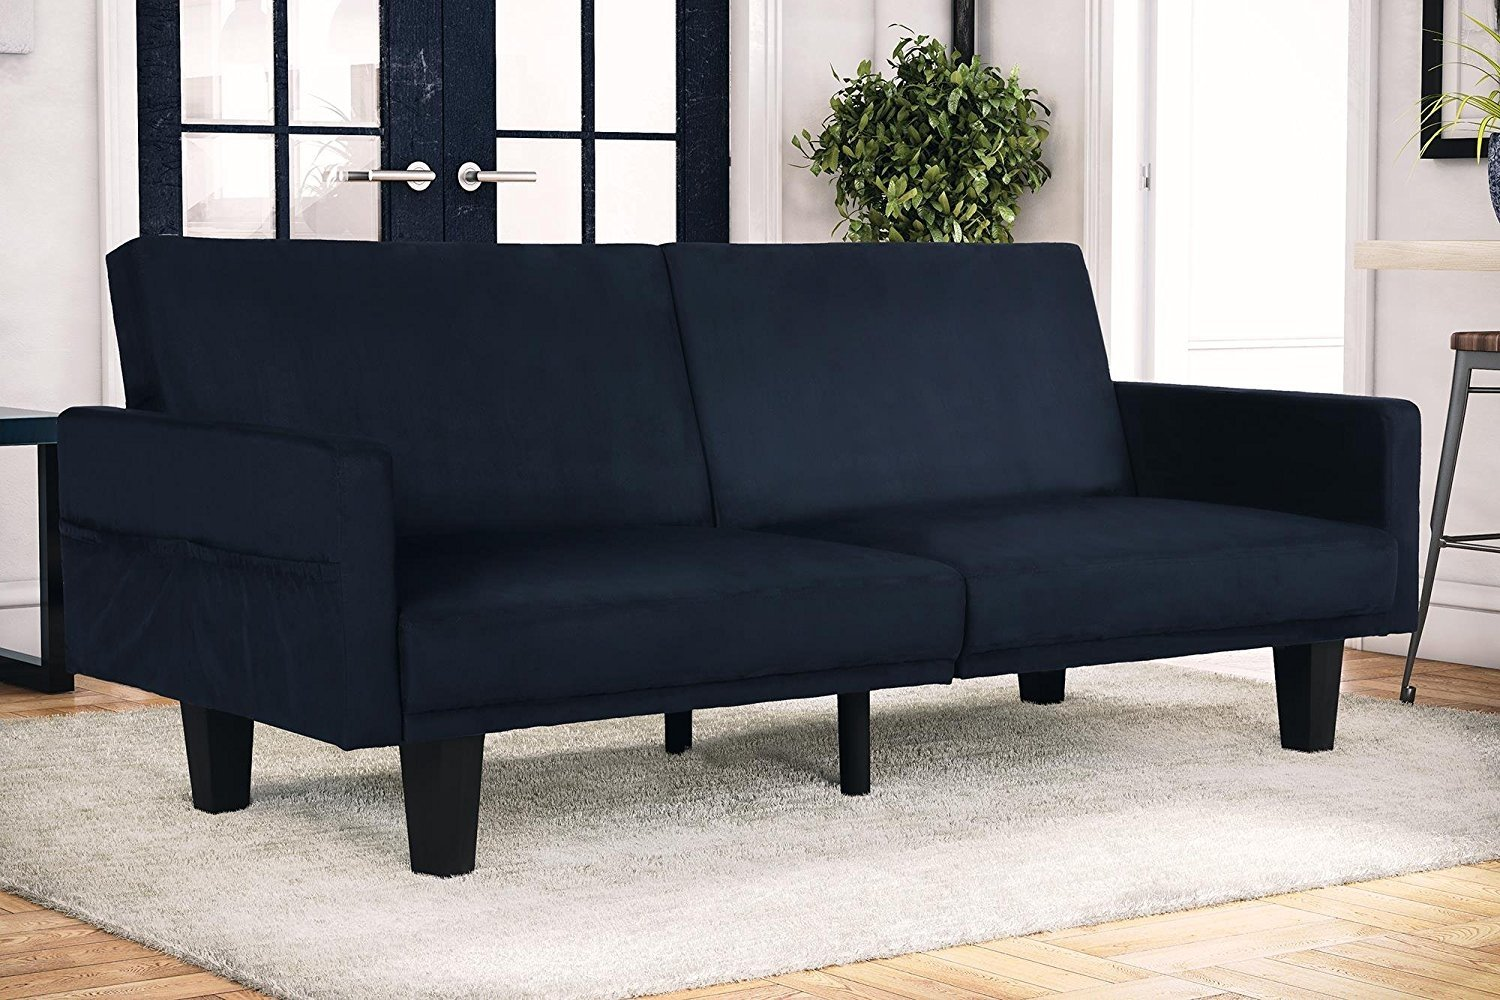 dhp metro modern splitback futon couch with storage pockets microfiber upholstery multifunctional blue